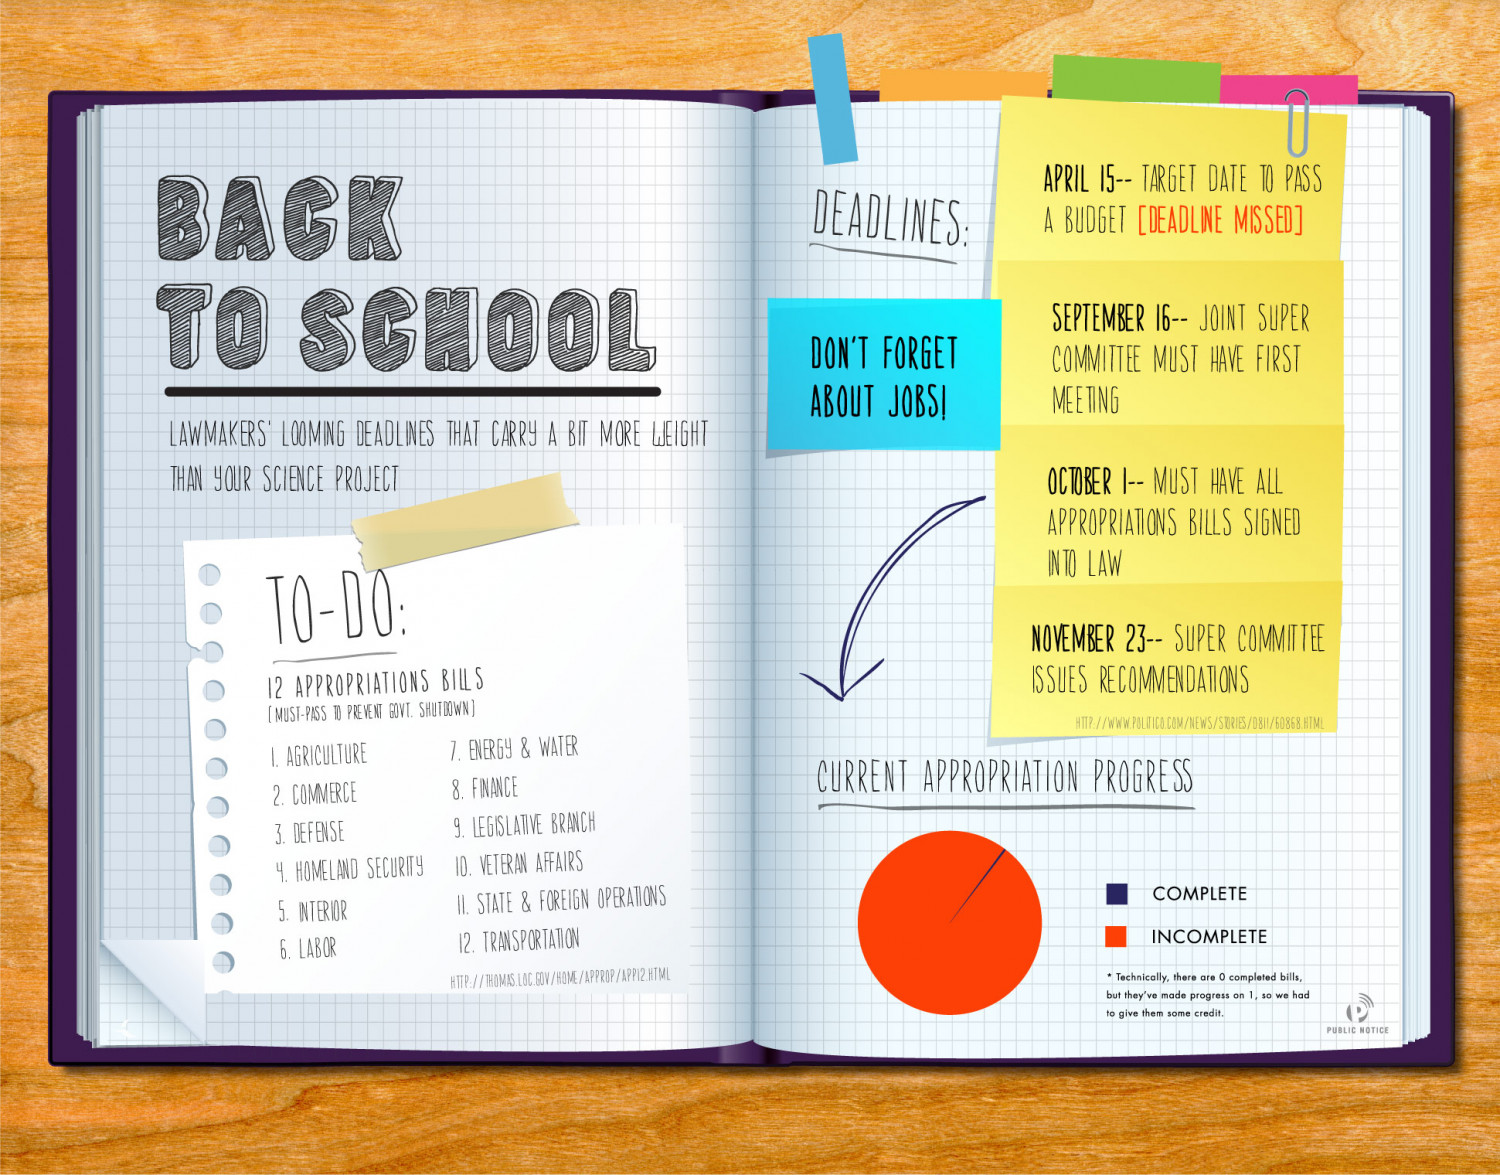 Back to School Infographic